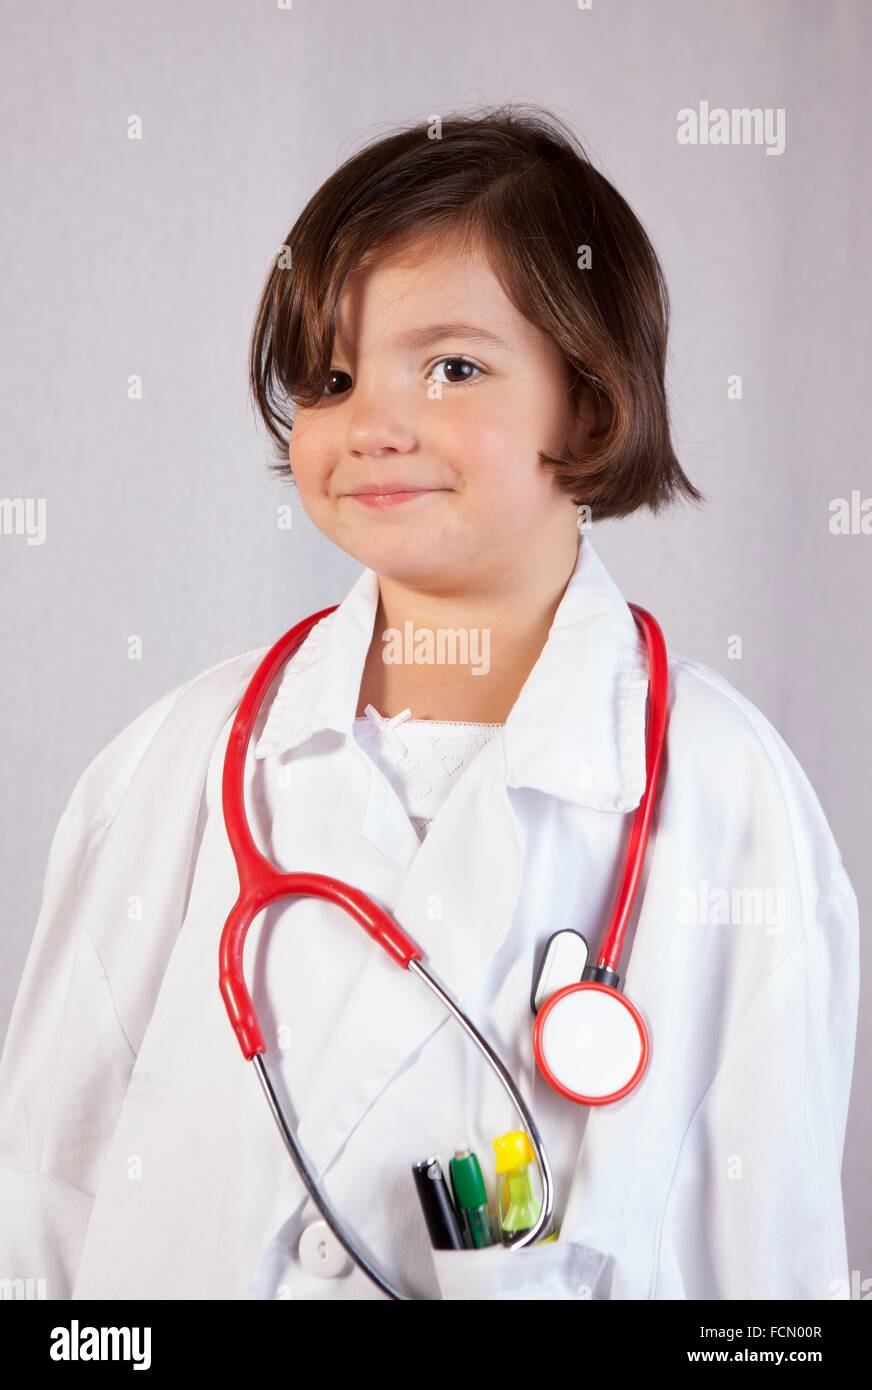 Little girl dressed with a white lab coat and stethoscope. Isolated over white background. - Stock Image